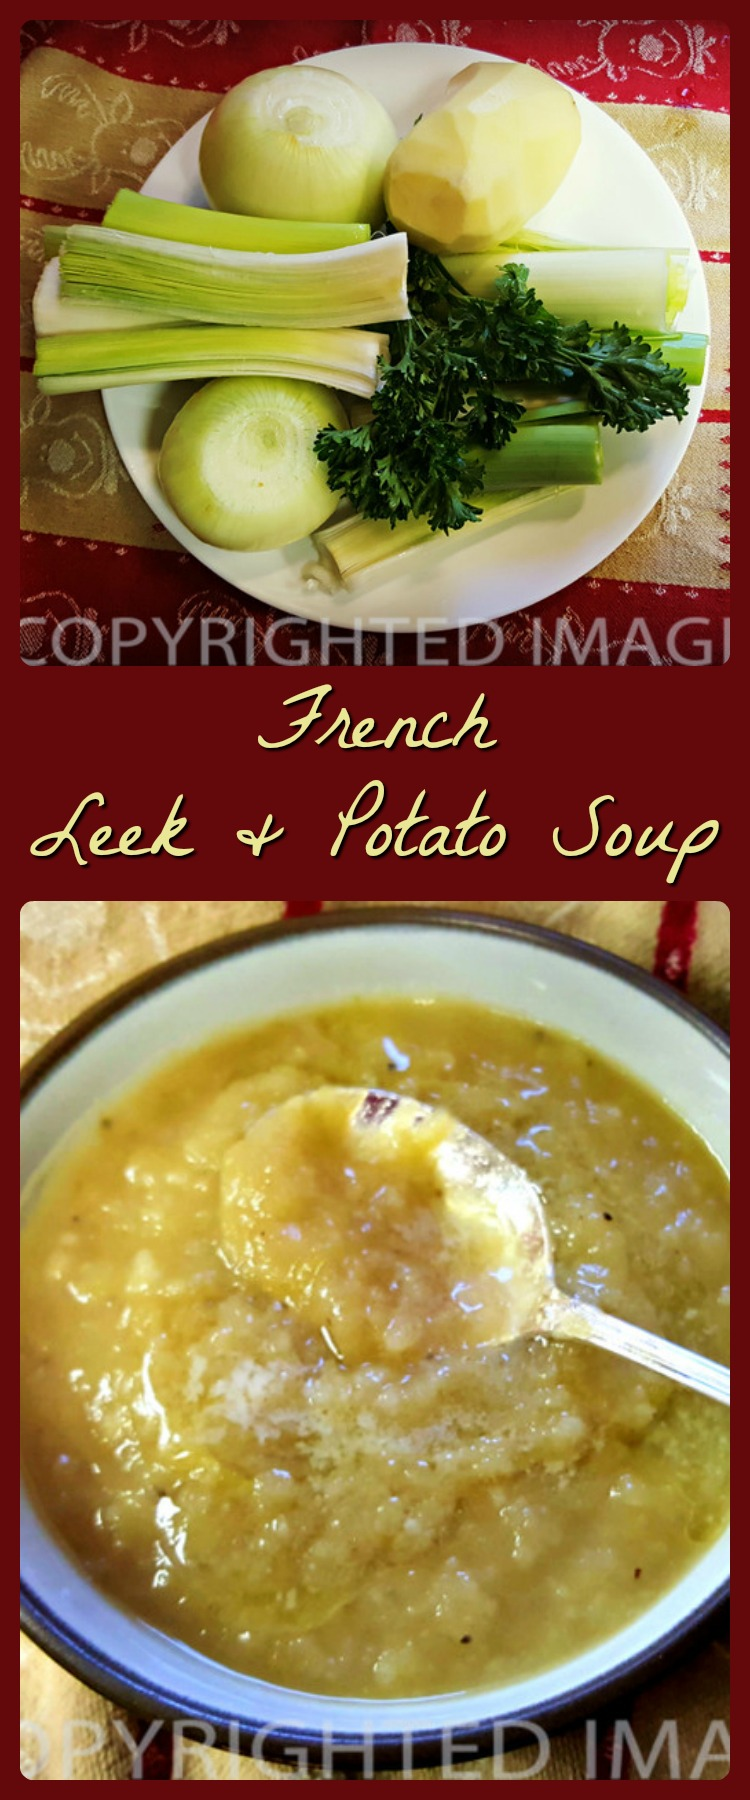 French leek and potato soup - a creamy country soup - ranks high as comfort foods. It's been Dad's favorite soup since he set foot in France in 1944.